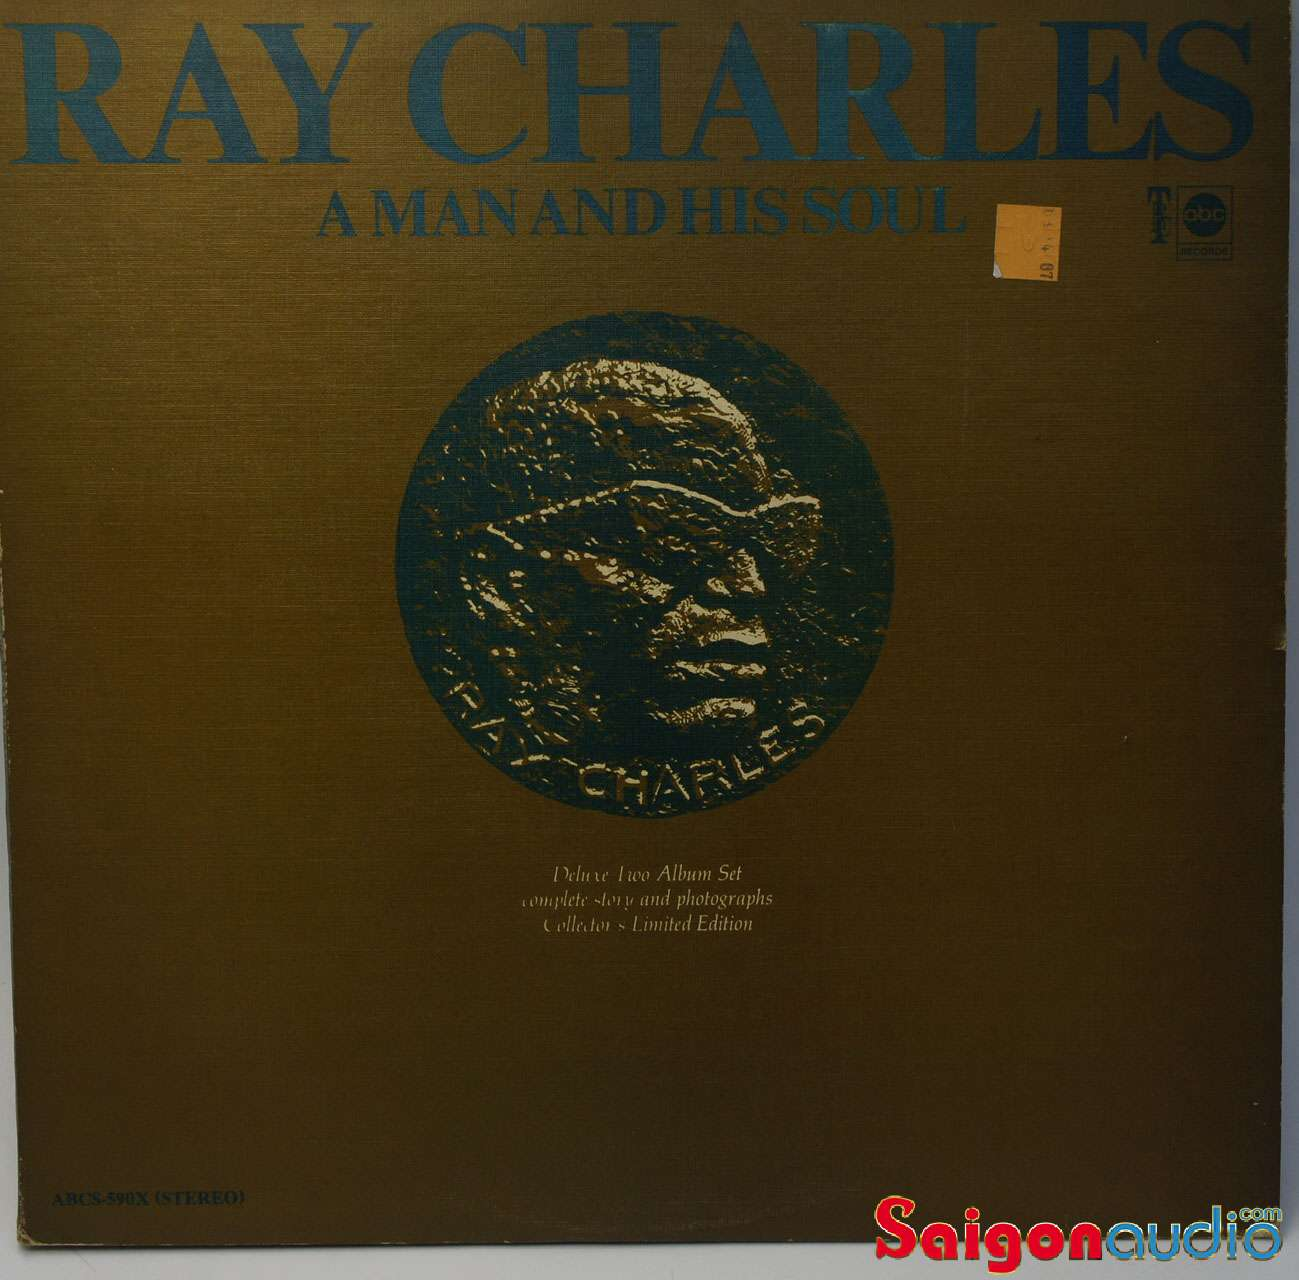 Đĩa than Ray Charles, A Man and His Soul - Vinyl LP Record (2 LP)